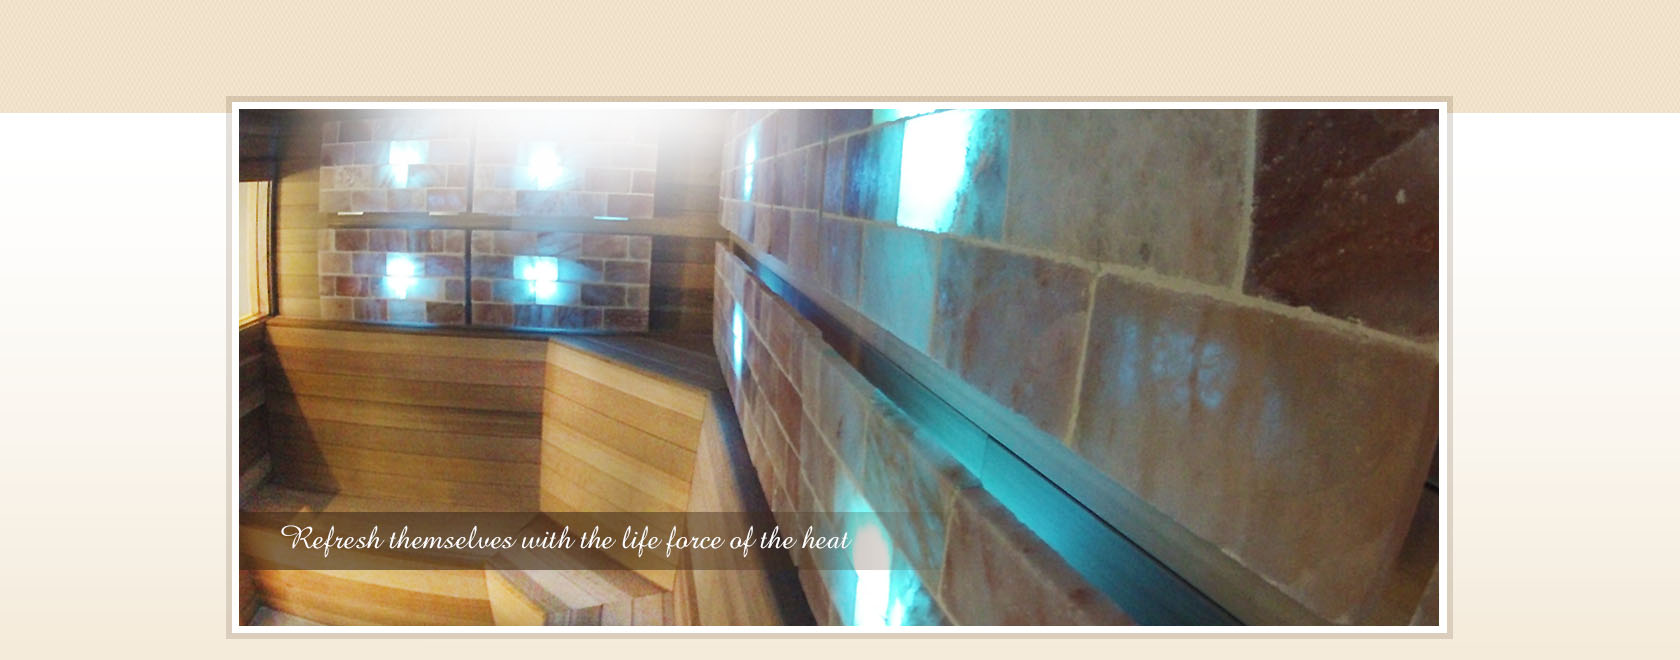 Indoor Saunas | Refresh themselves with the life force of the heat